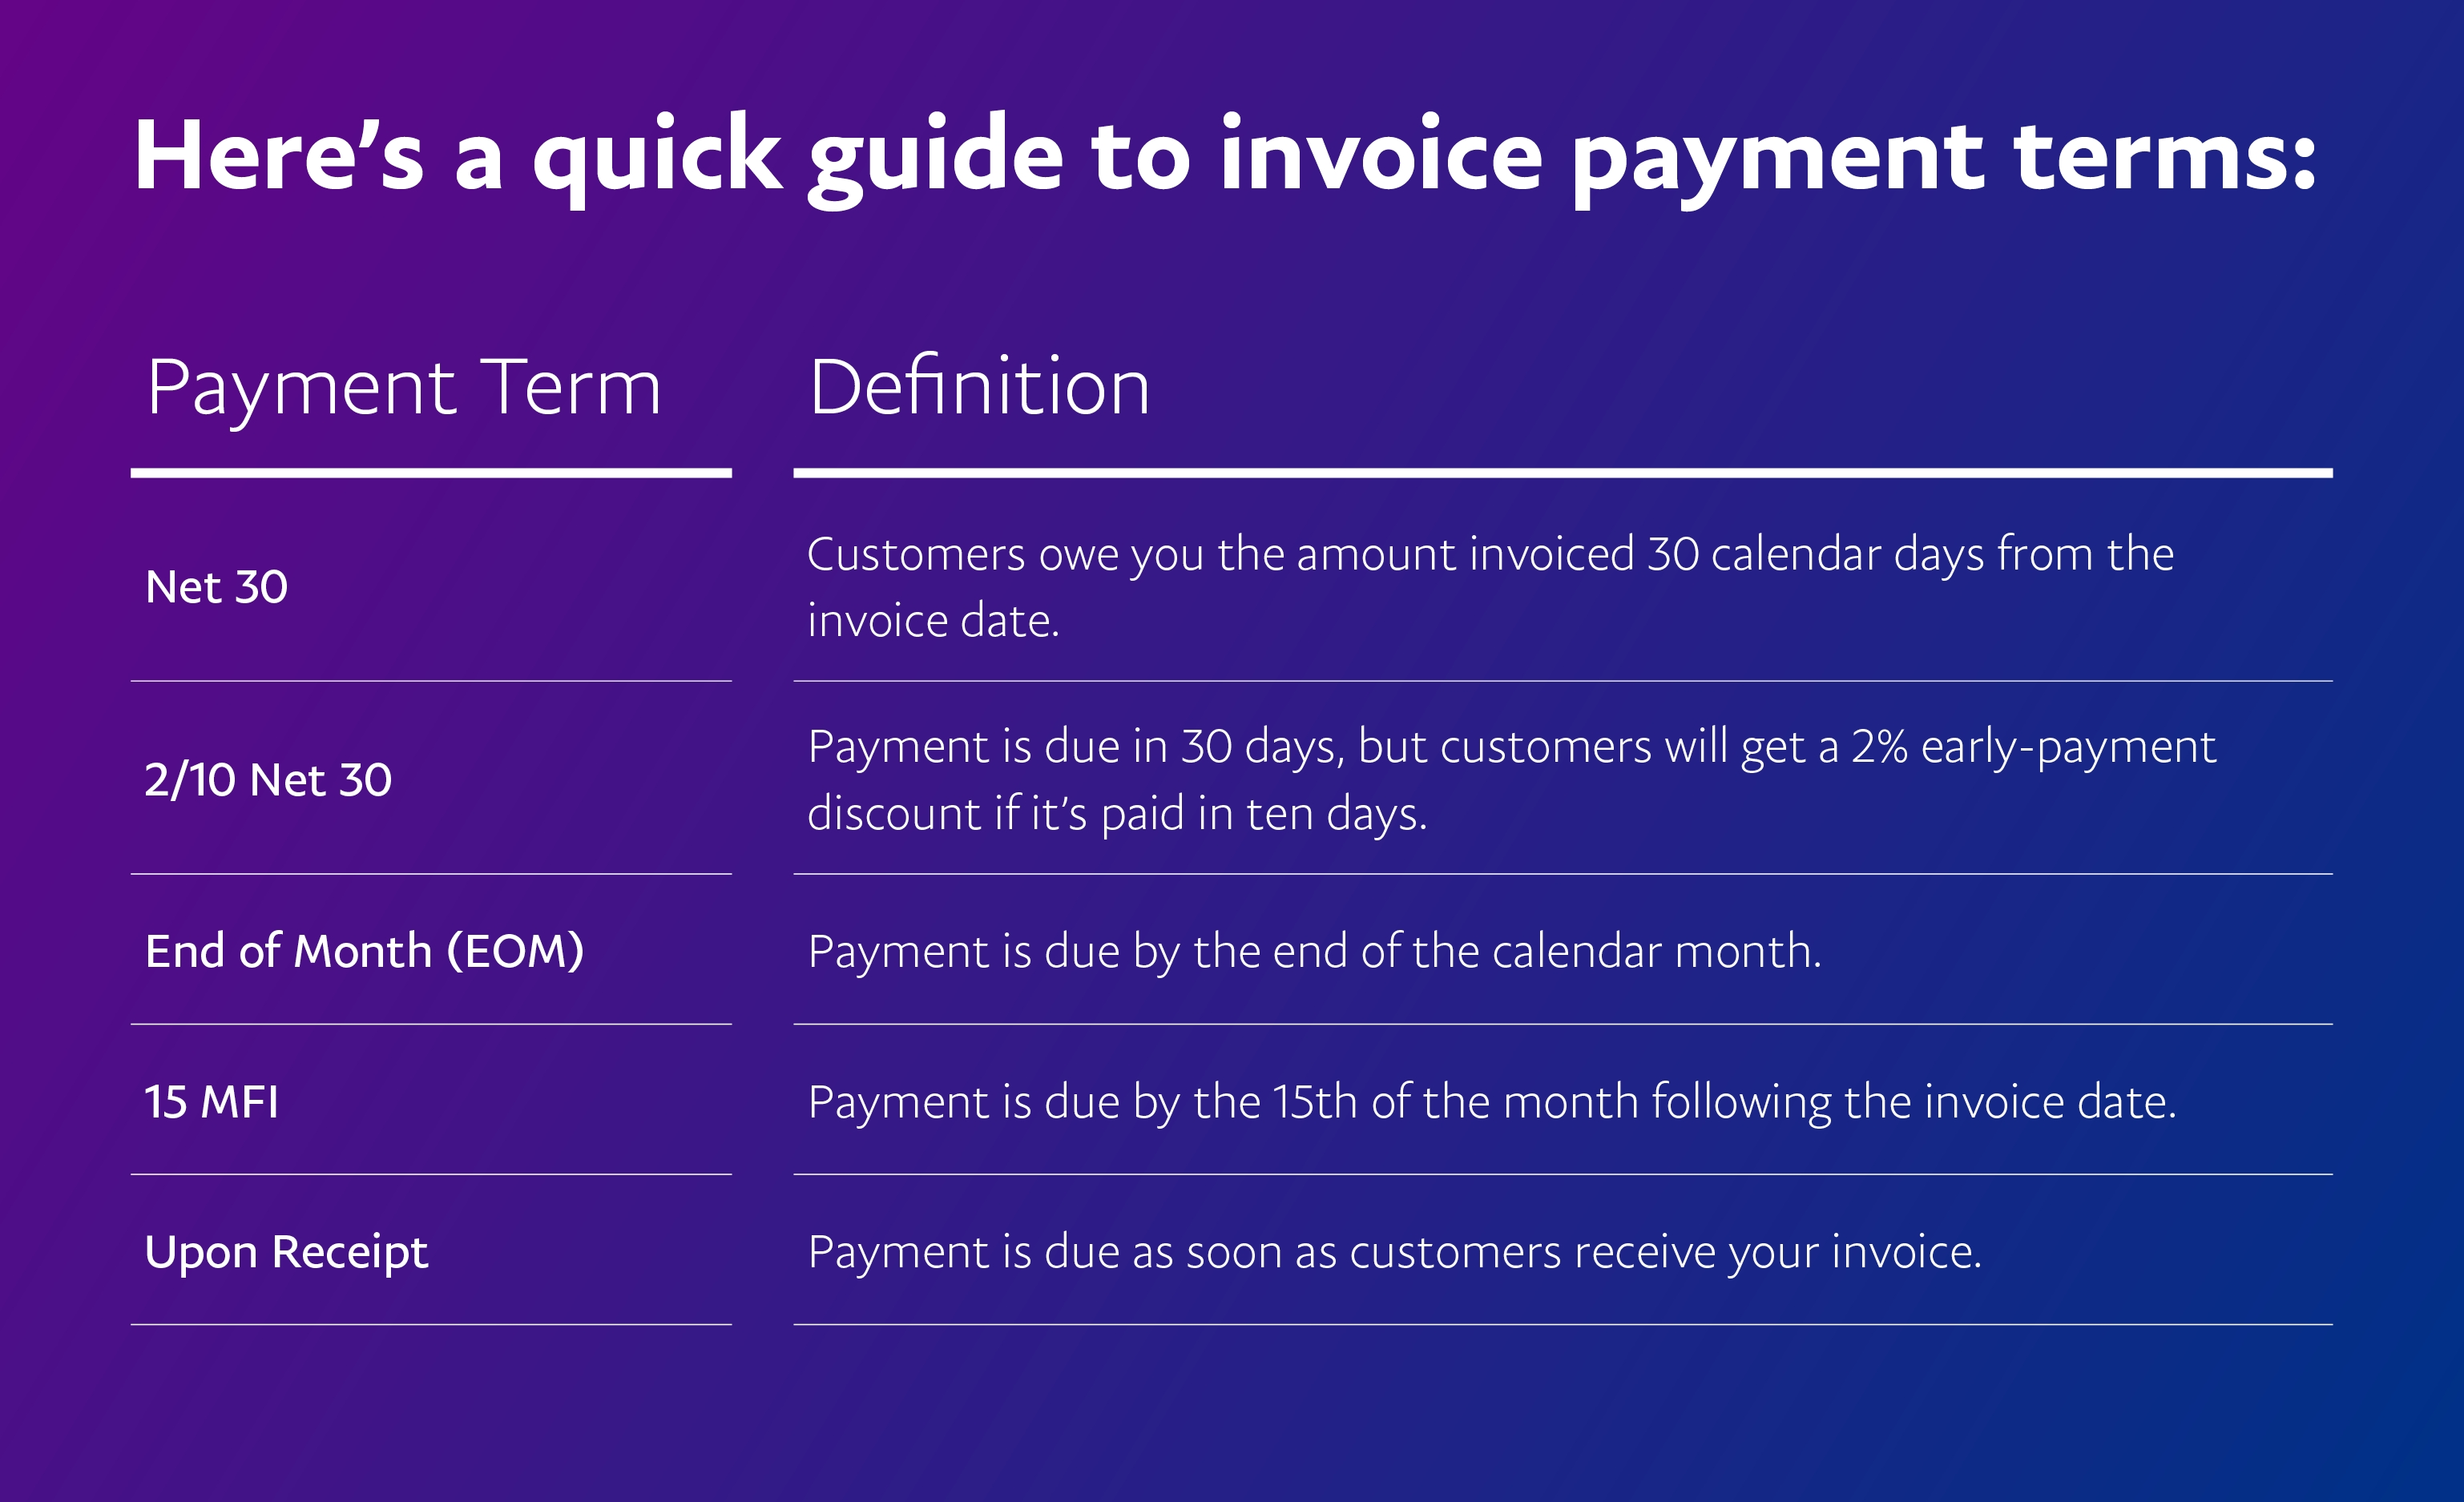 5 popular invoice payment terms paypal small business payment terms